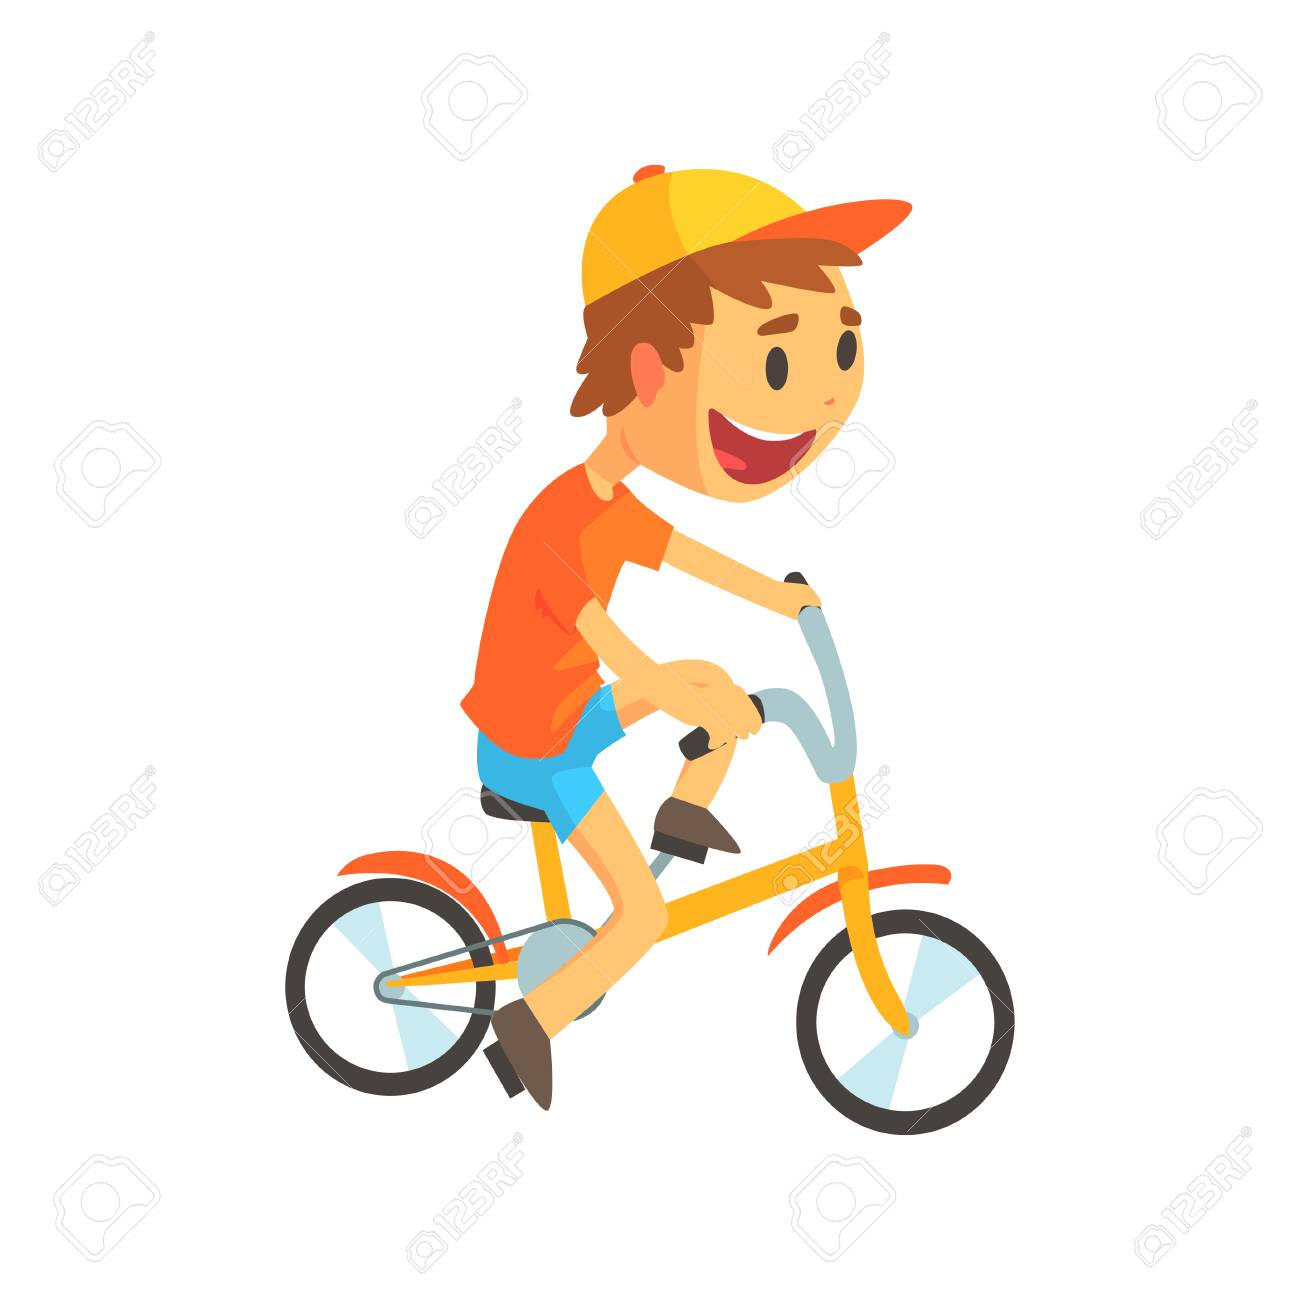 Funny little boy in yellow baseball cap riding bicycle. Kid cycling. Child  outdoor activities 42f53dac8615